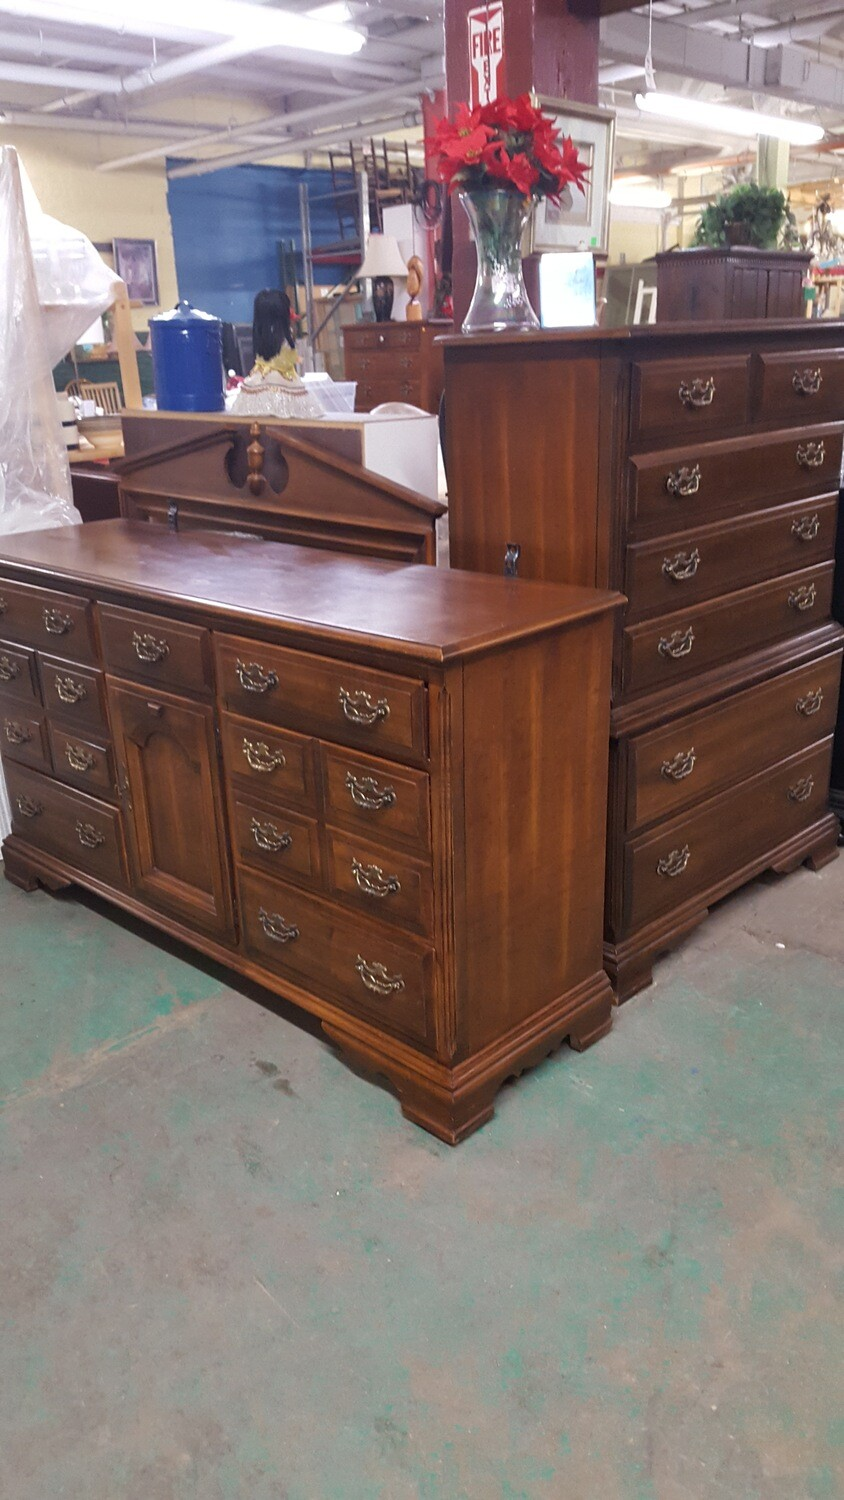 Matching Dressers by Sears (P)